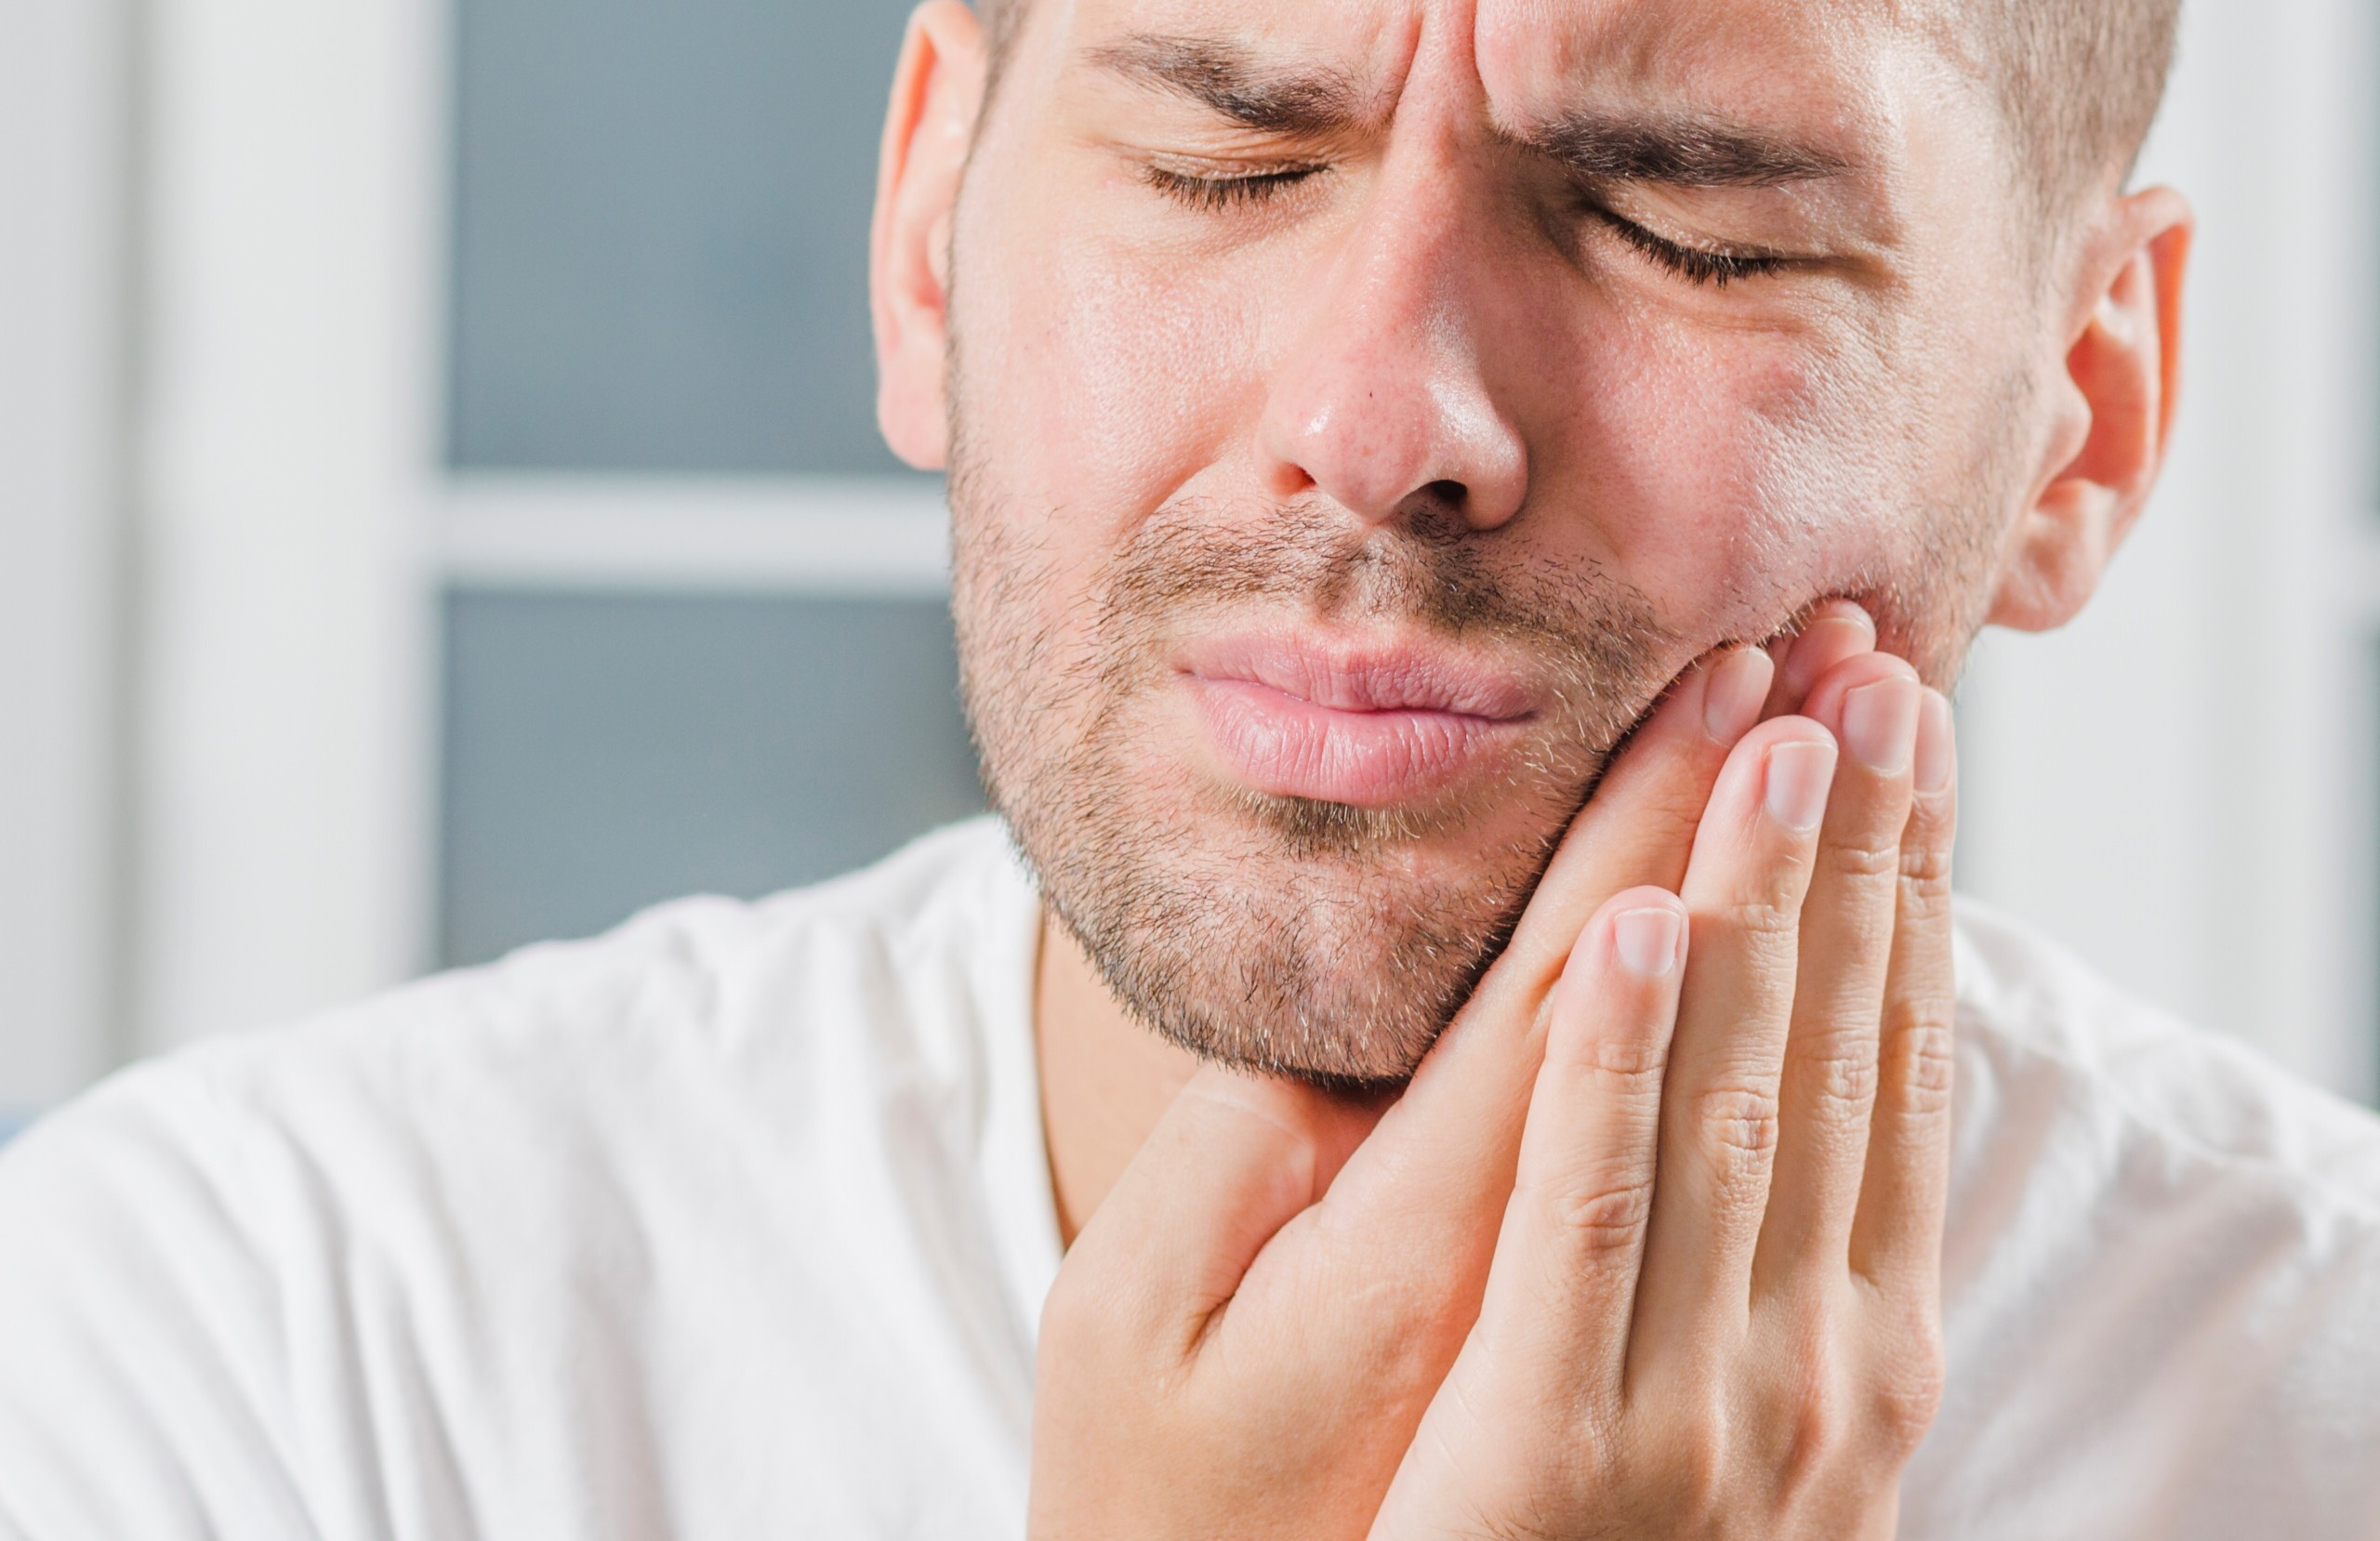 Can TMJ Disorder Cause Sleep Apnea or Make It Worse?